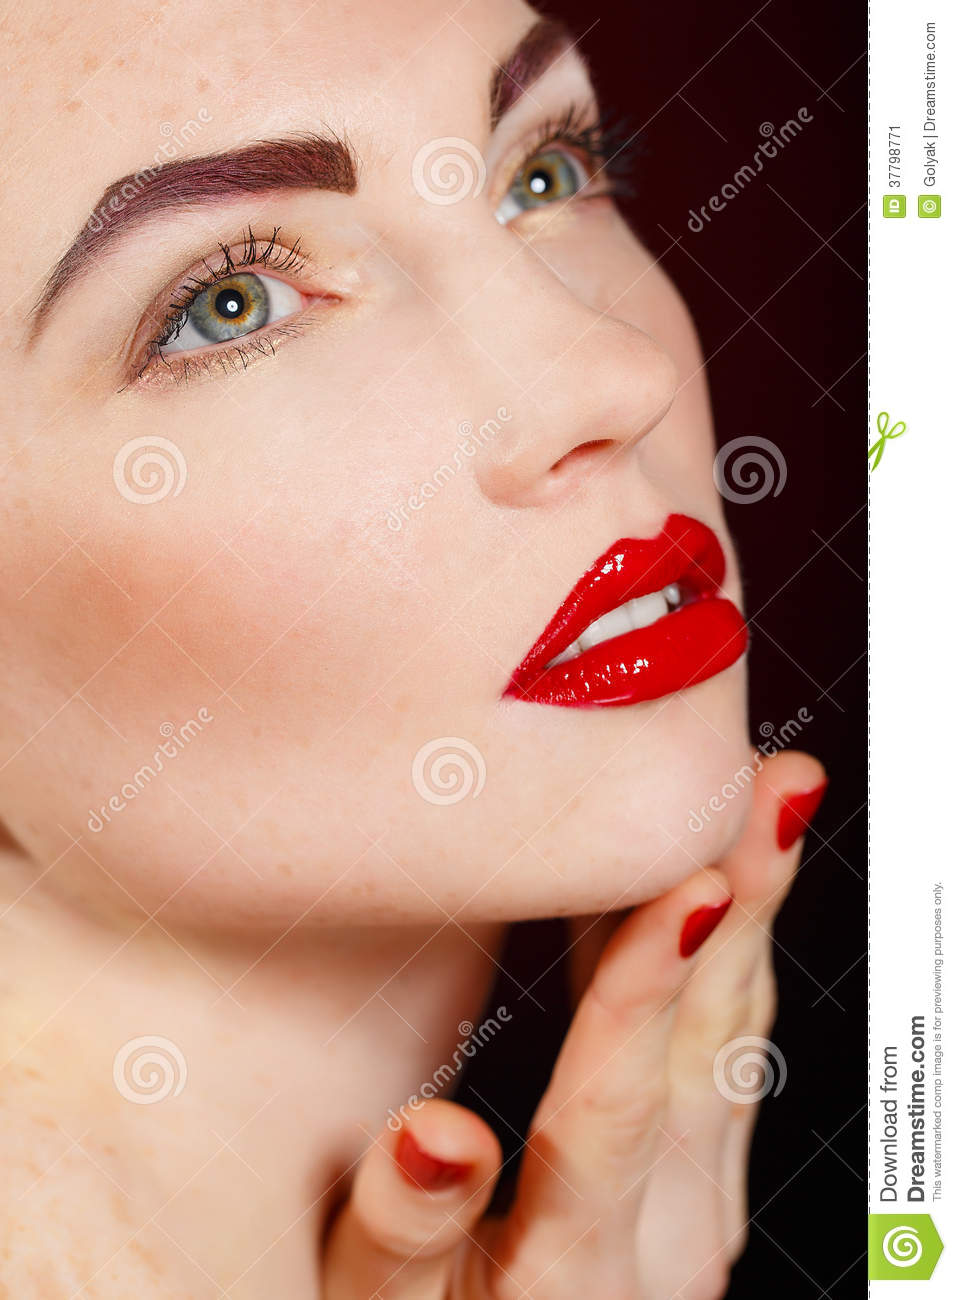 Glamour Makeup: Close-up Portrait Of European Young Woman Model With